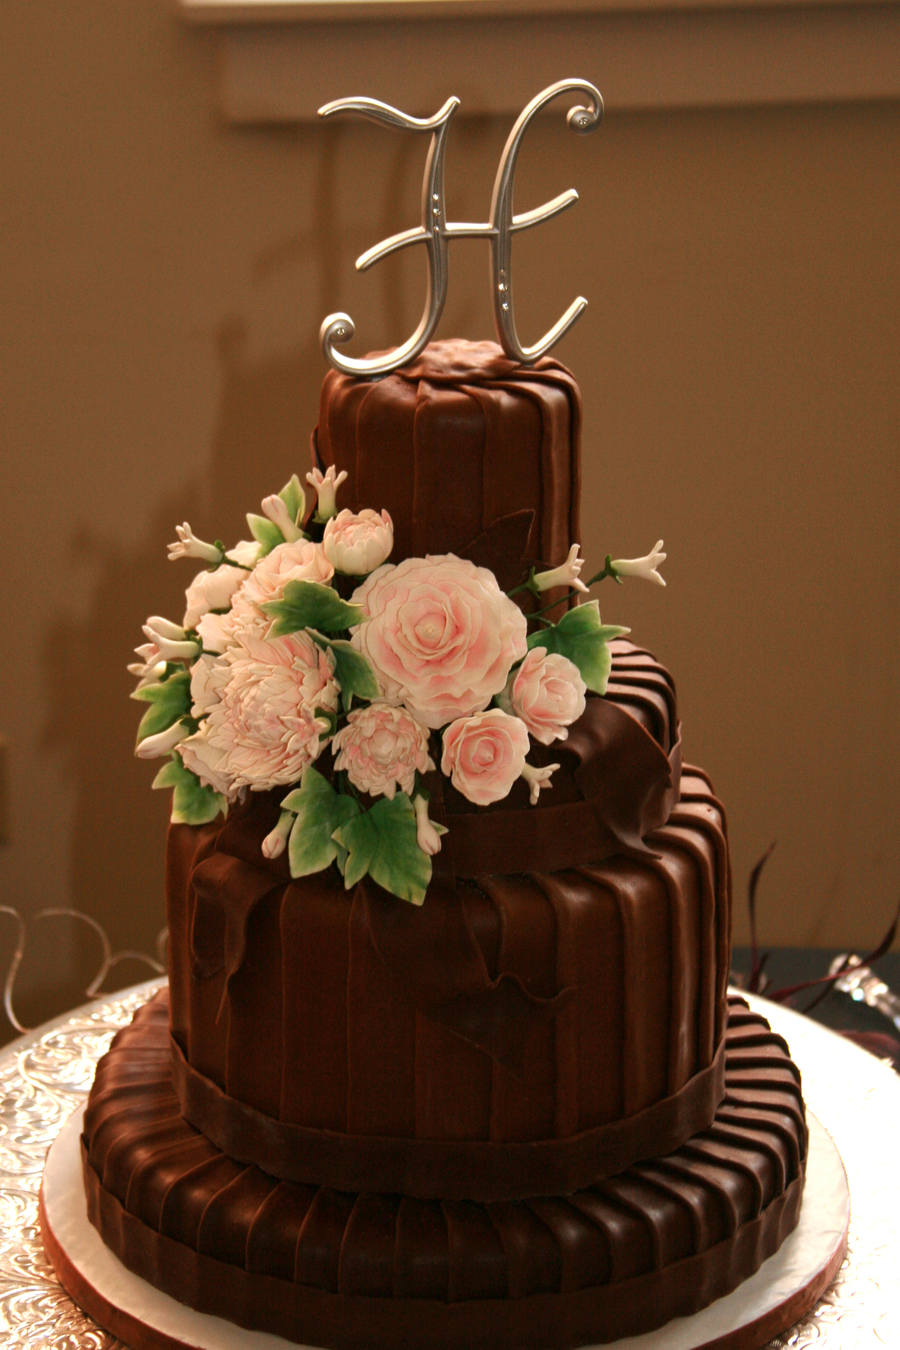 chocolate wedding cakes recipe chocolate buttercream wedding cakes 12797